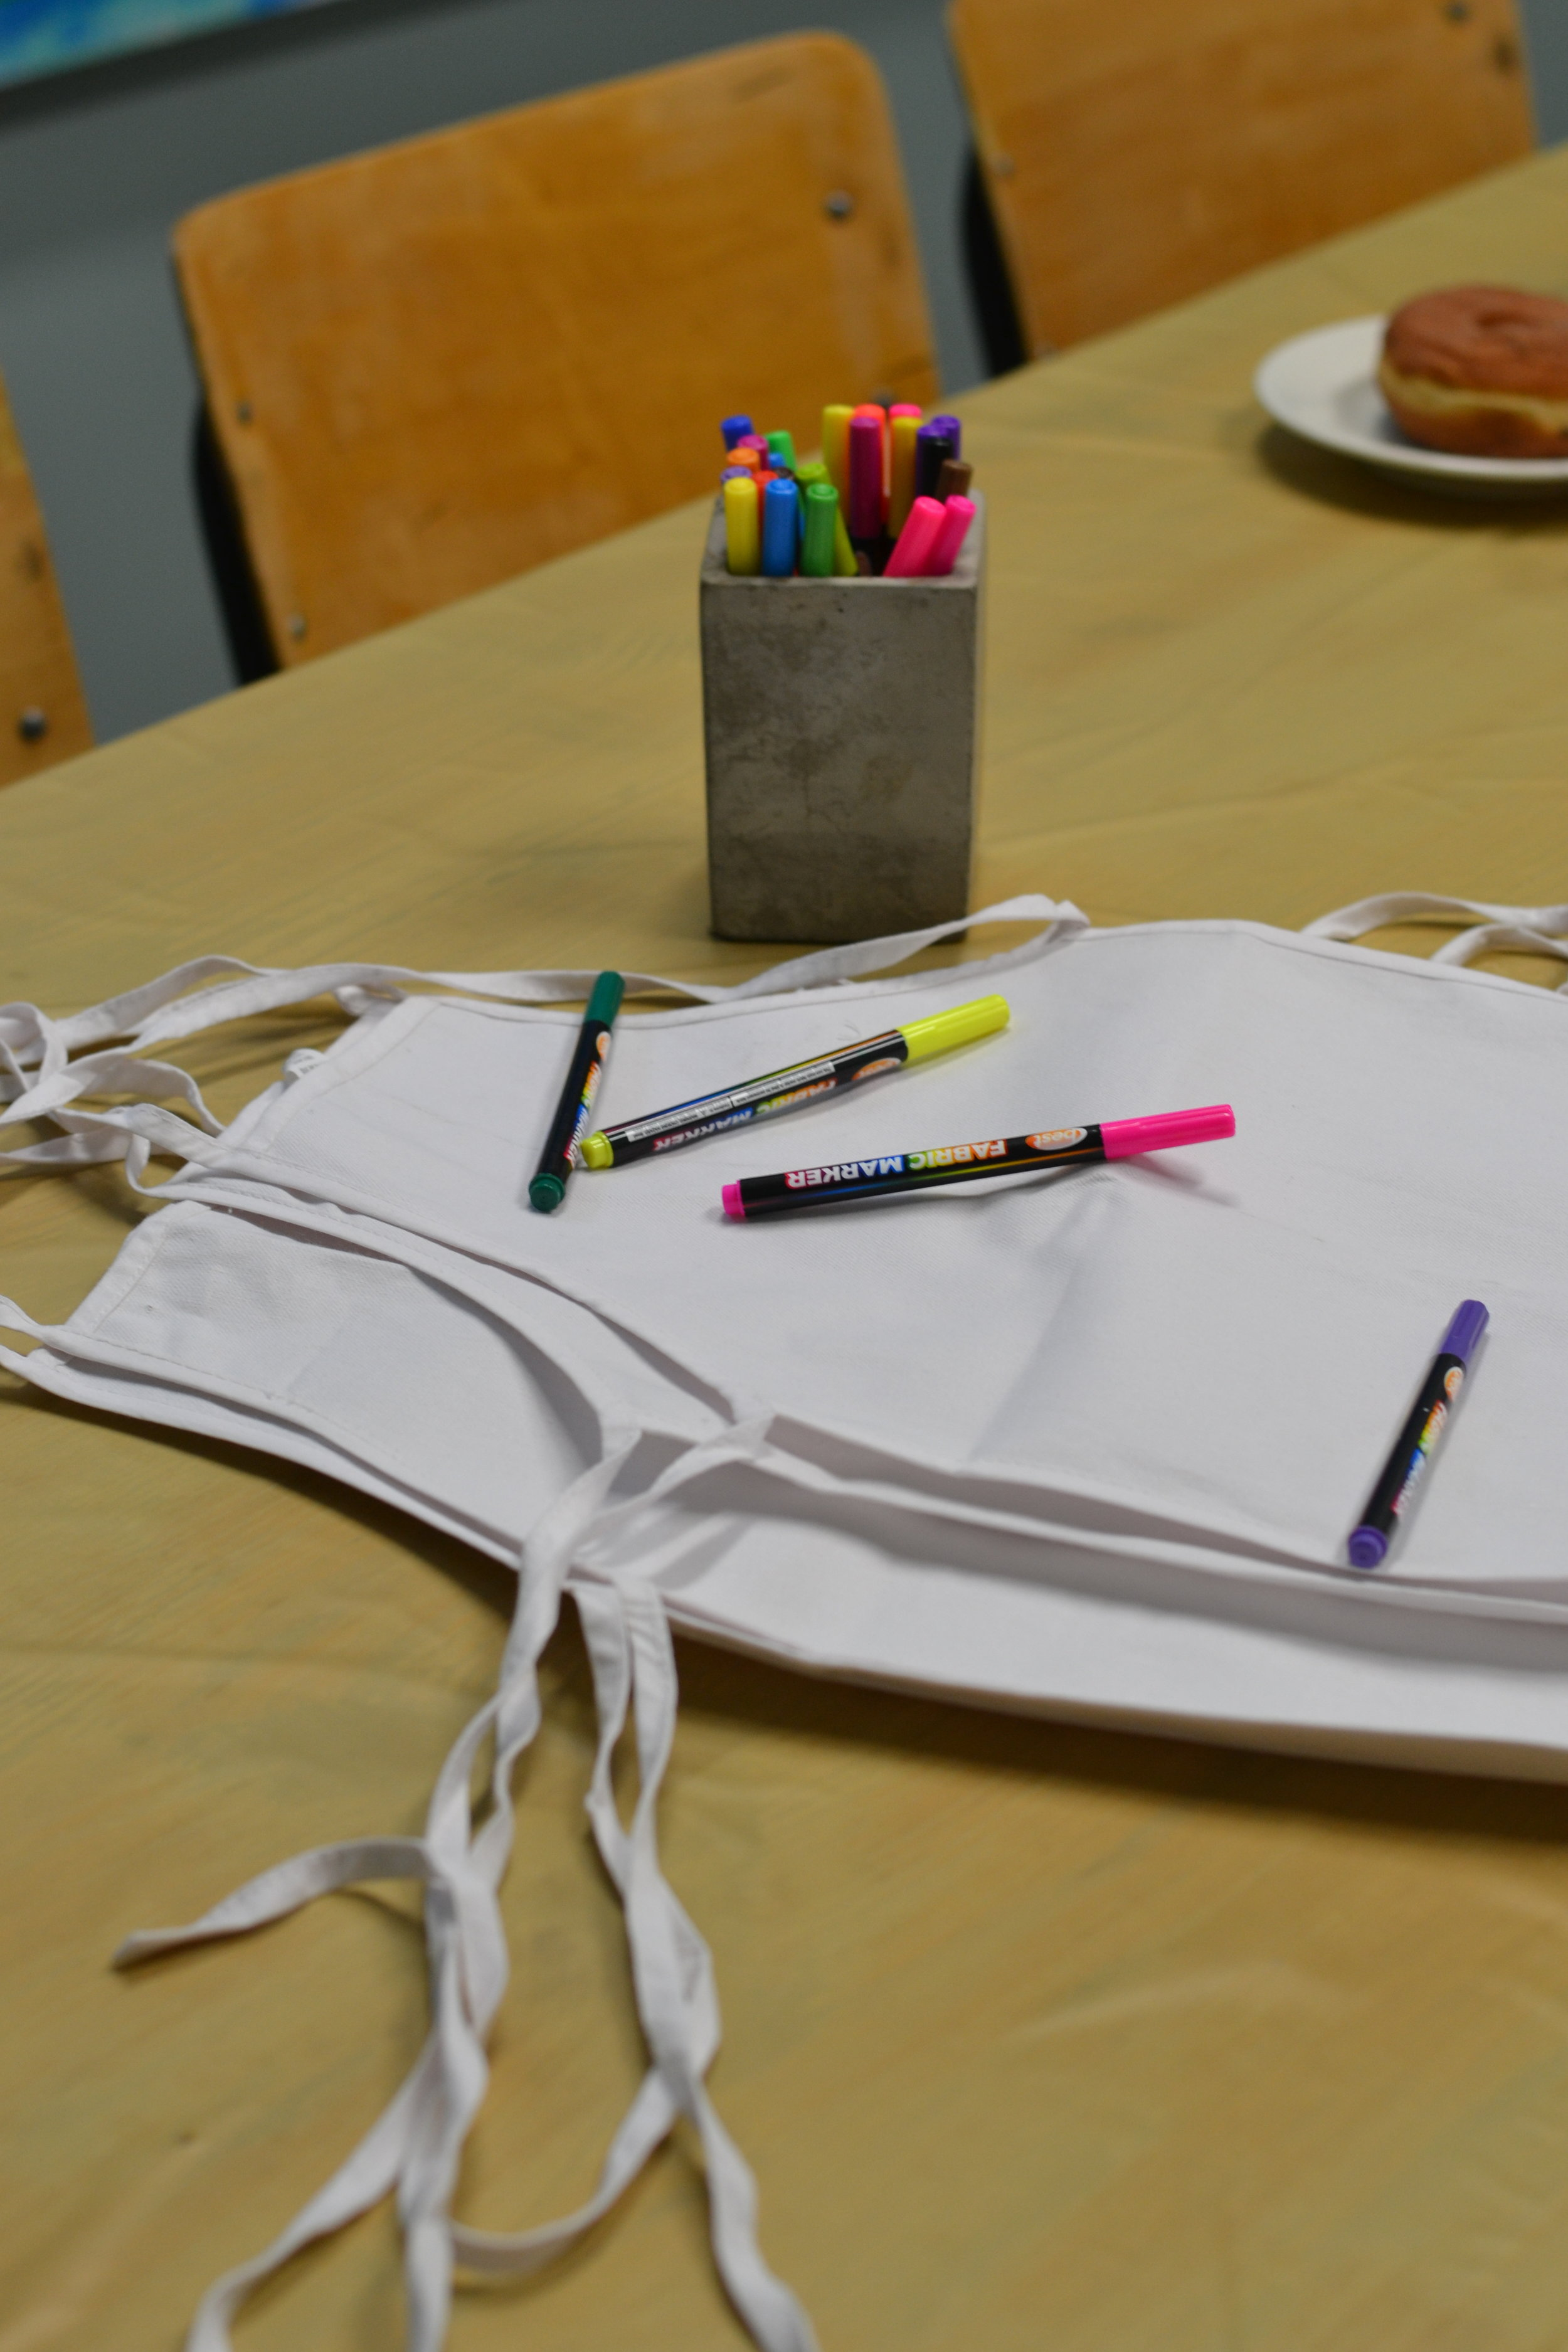 Decorate your own aprons, complete with fabric markers